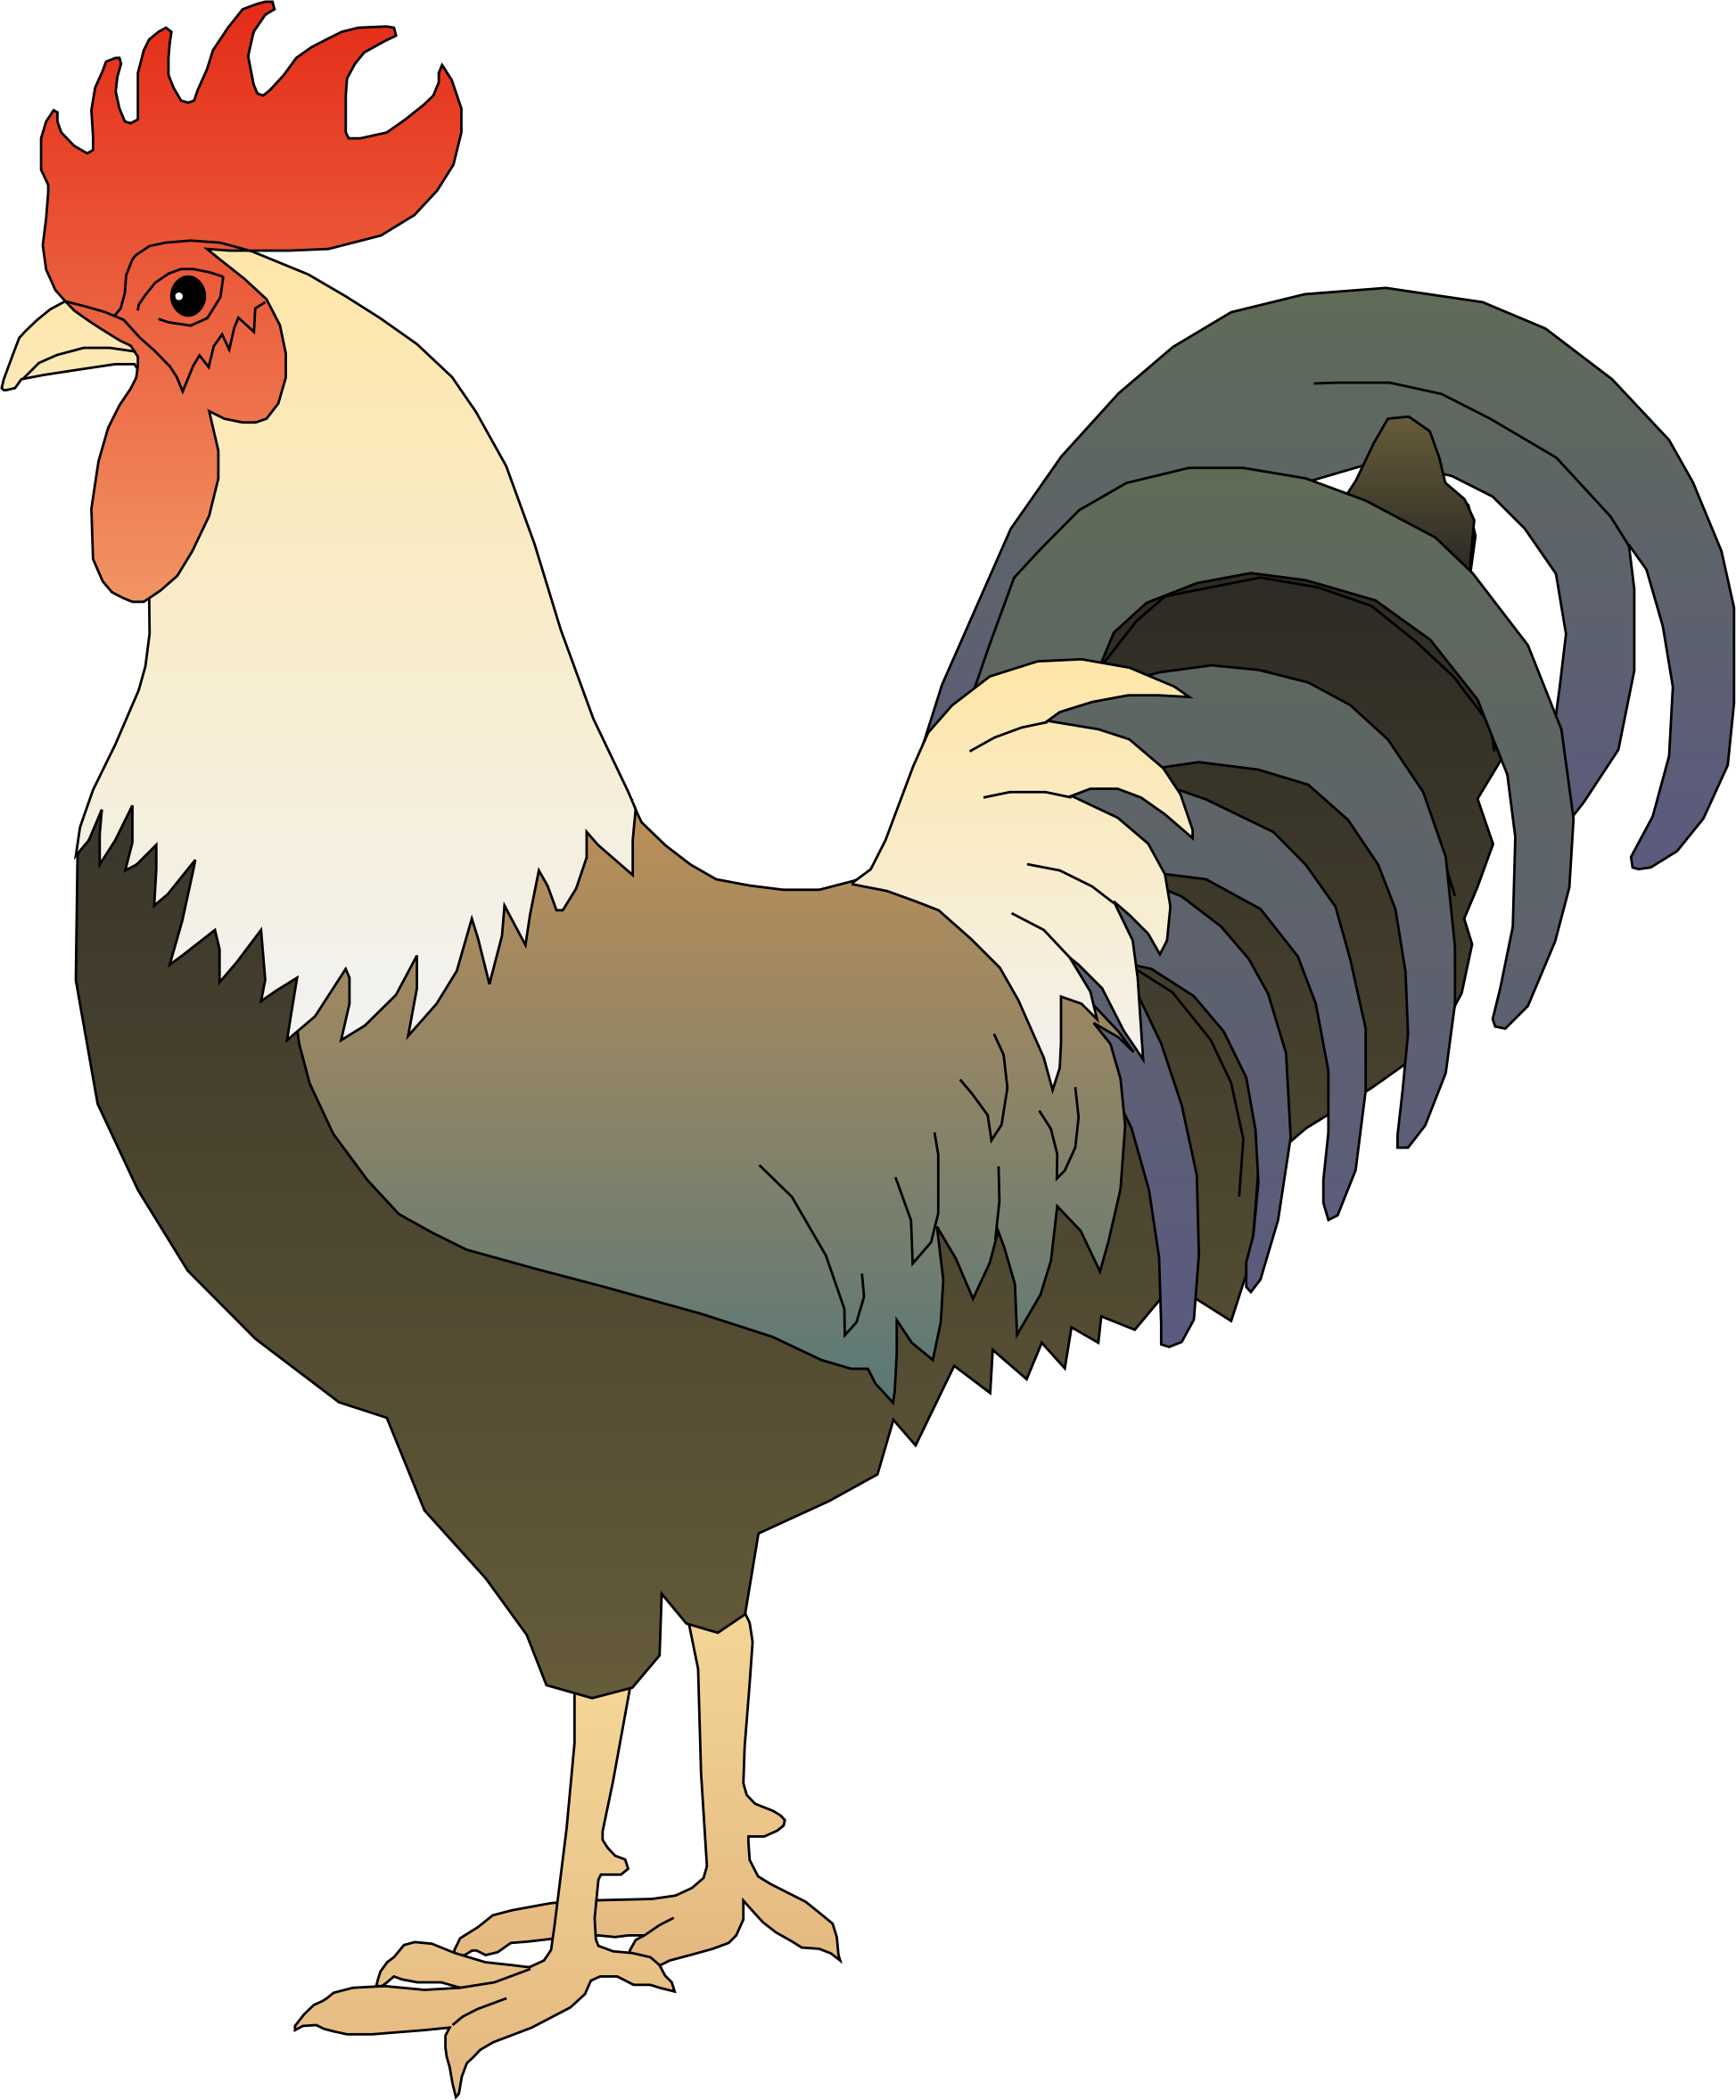 Rooster clipart png. Clip art